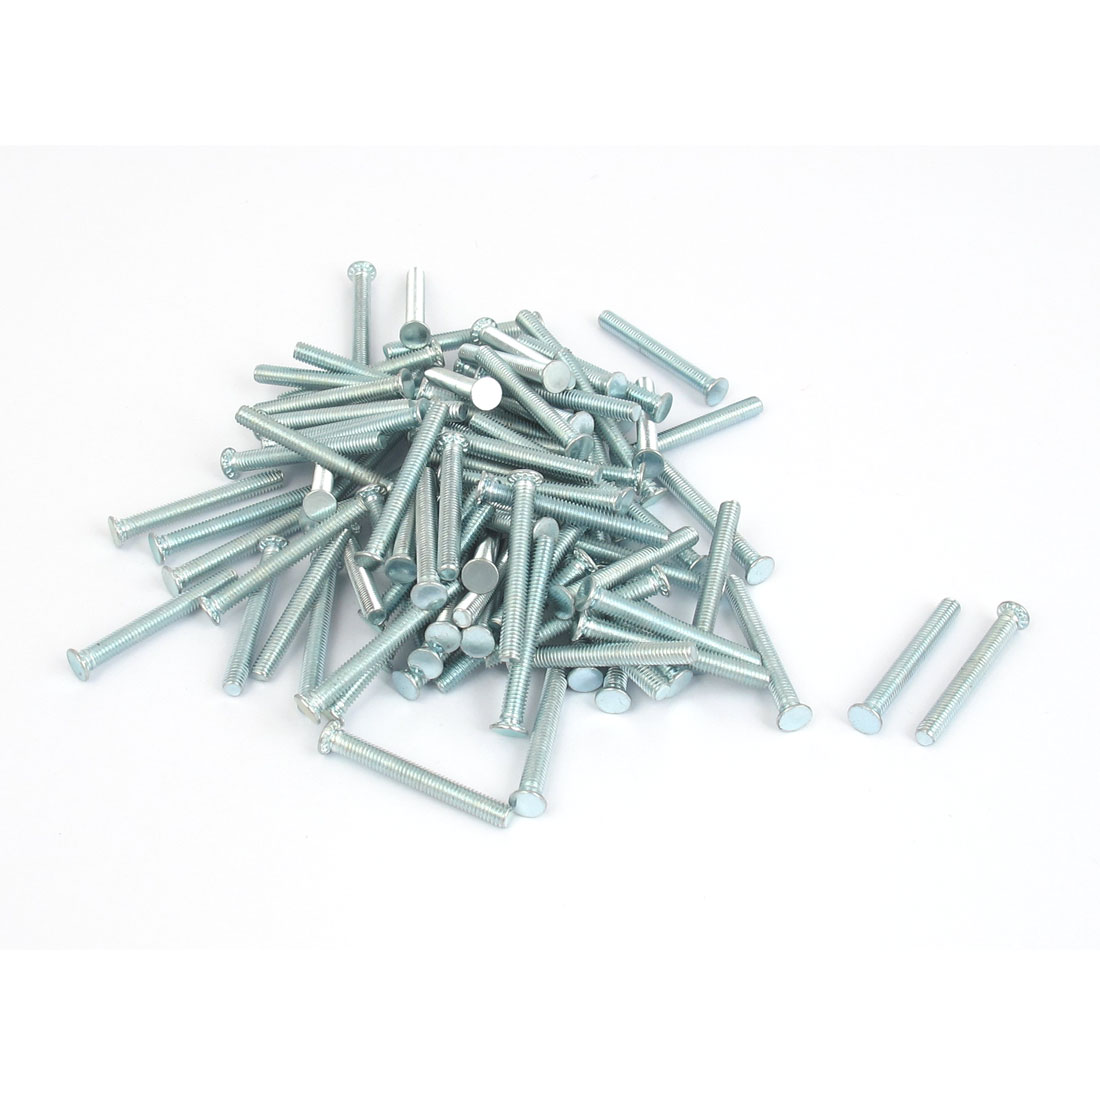 M3x25mm Zinc Plated Flush Head Self Clinching Threaded Studs Fastener 100pcs